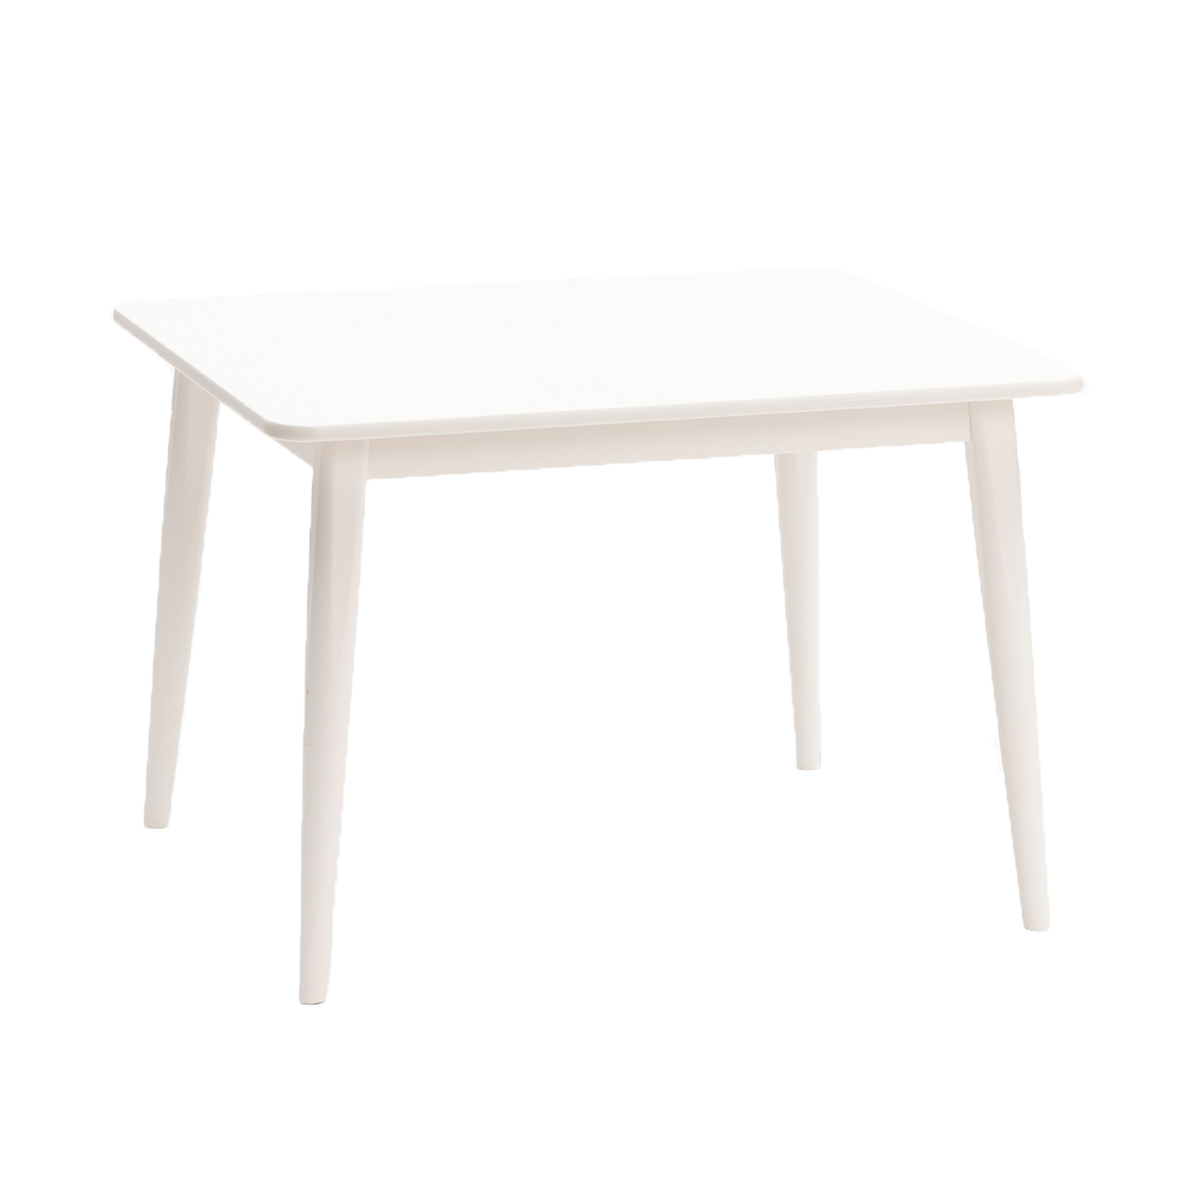 Milton and Goose Crescent Play Table in White